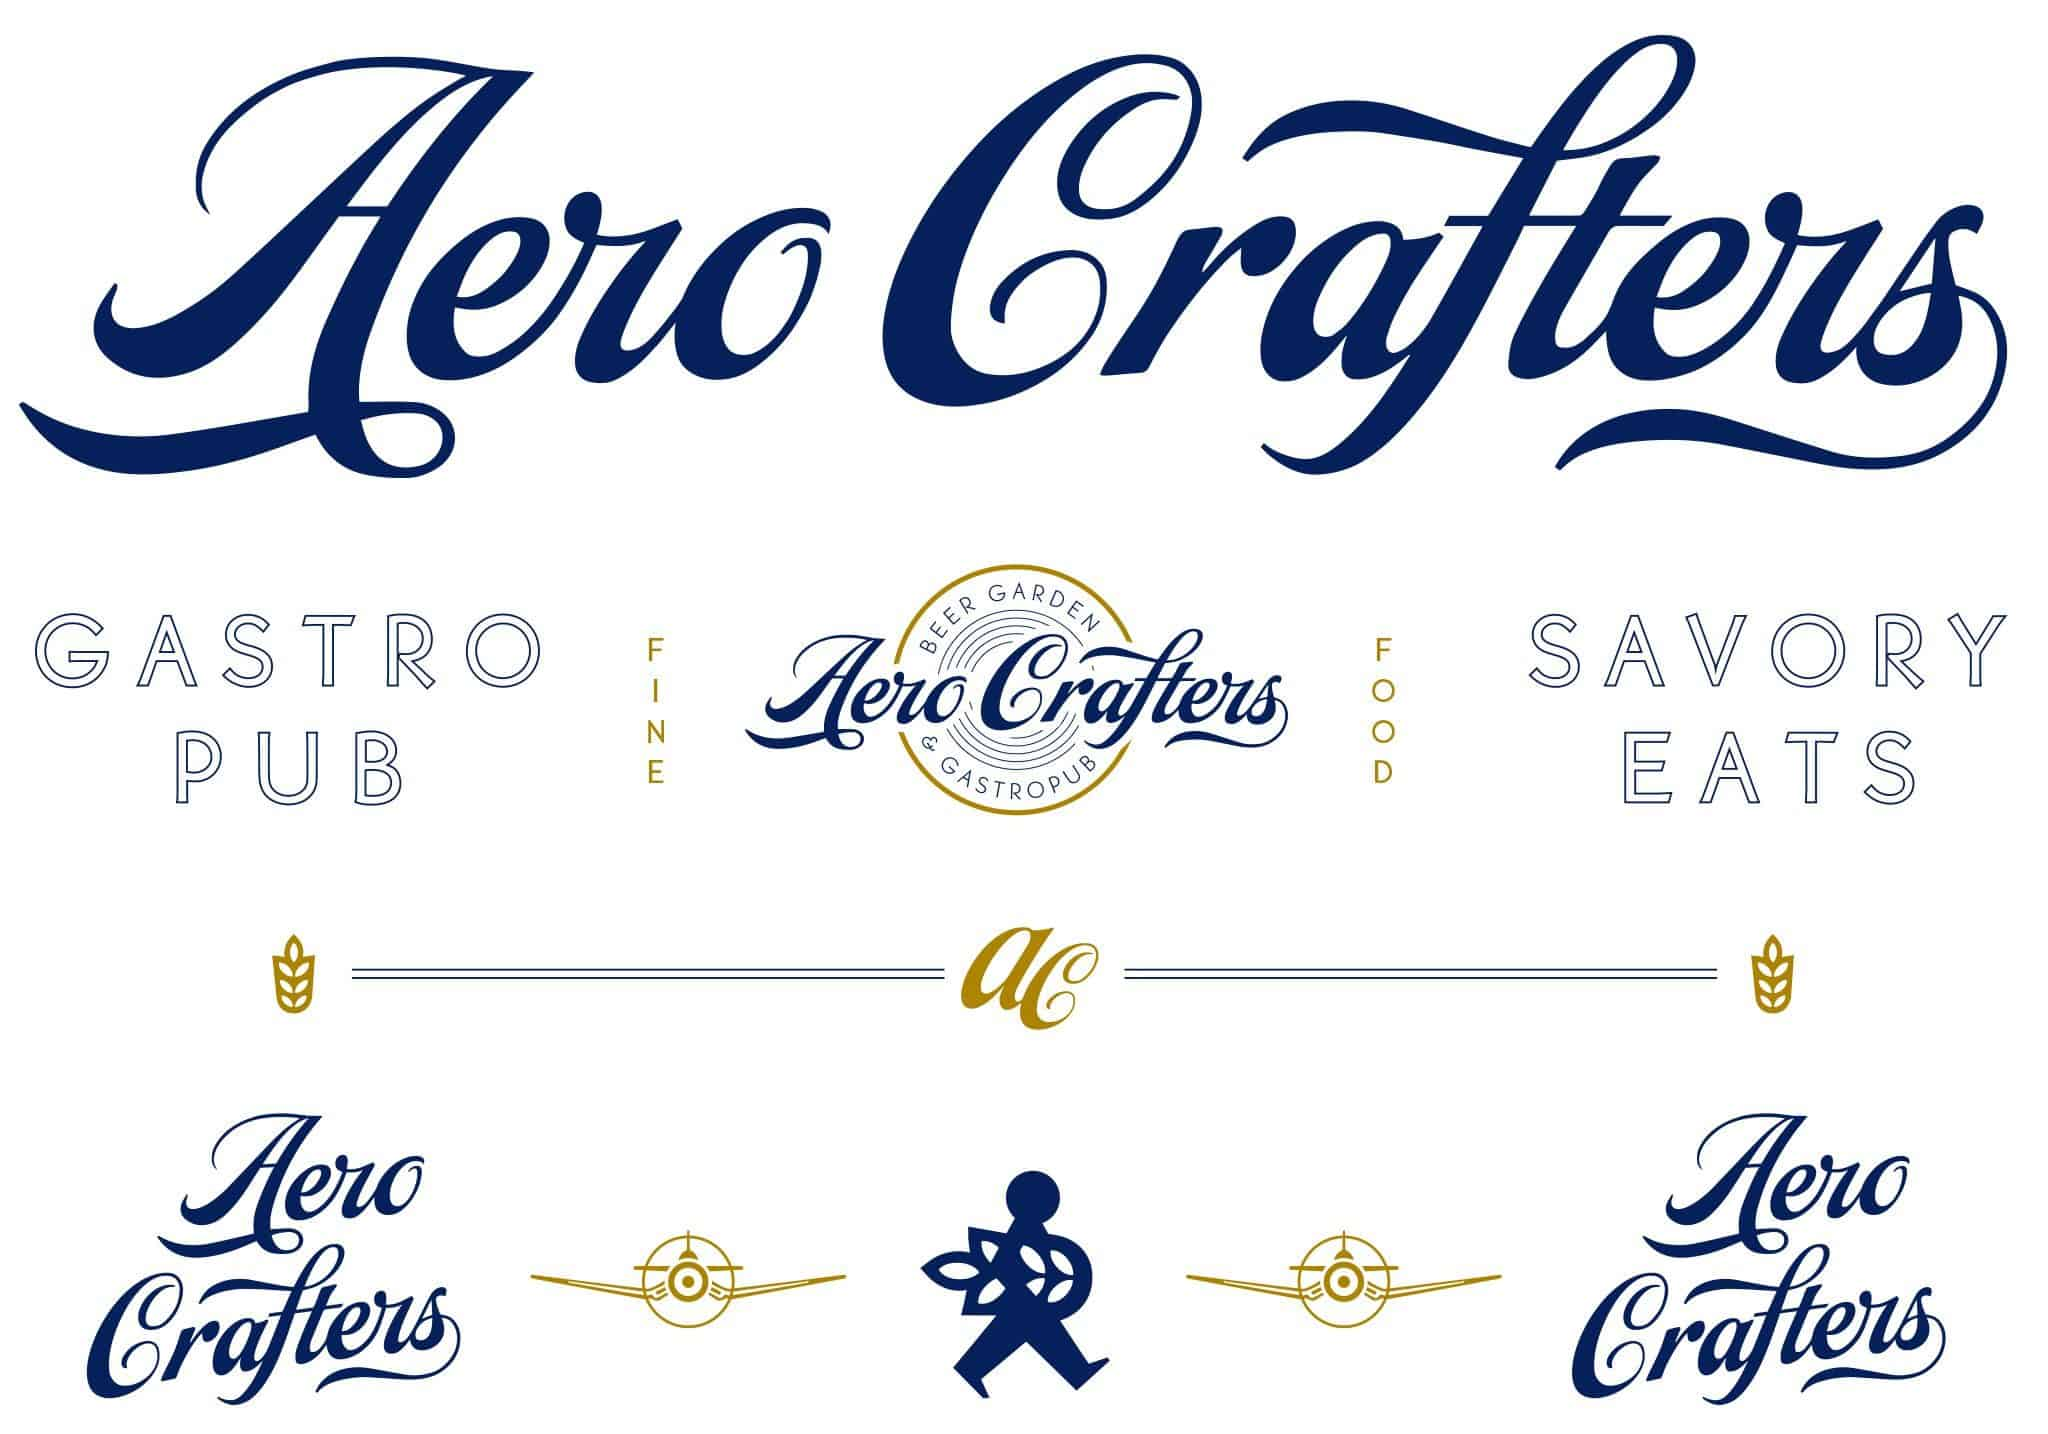 Logo Marks and variations for Aero Crafters Beer Garden, Victoria | Designed by Field of Study: A branding and graphic design consultancy | Houston TX | Jennifer Blanco & John Earles